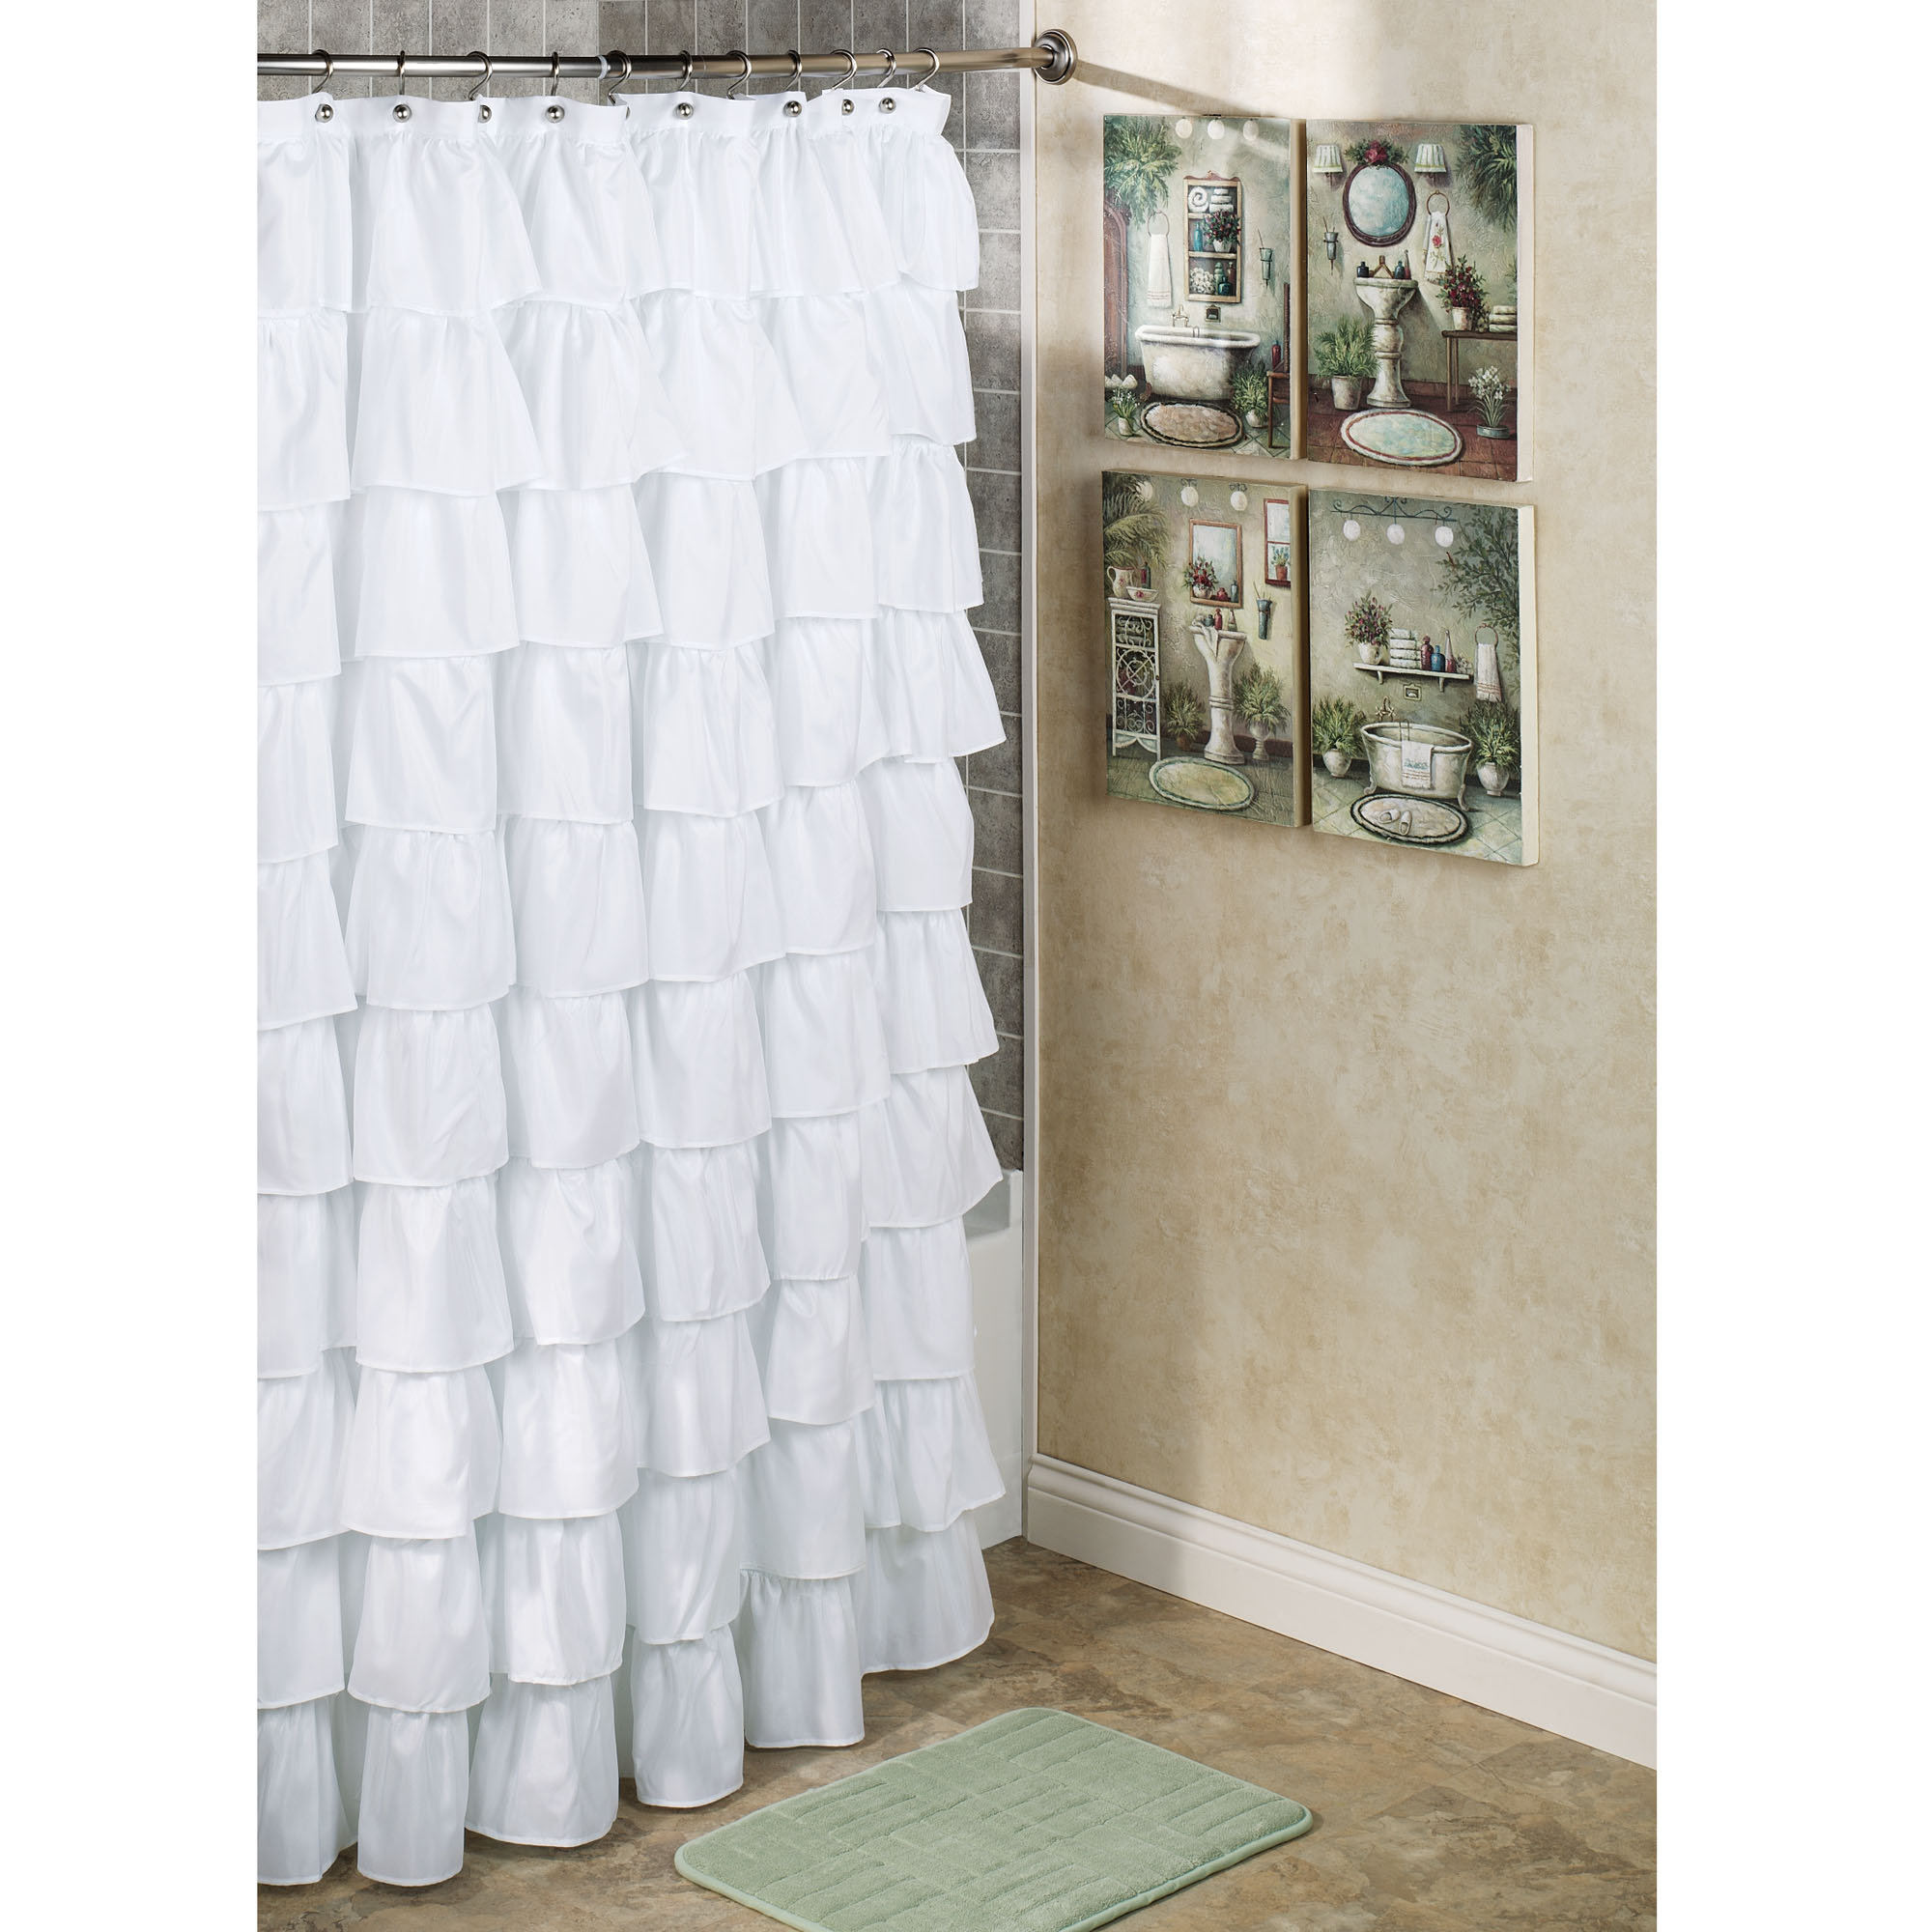 84 Long Shower Curtain Brown • Shower Curtains Ideas